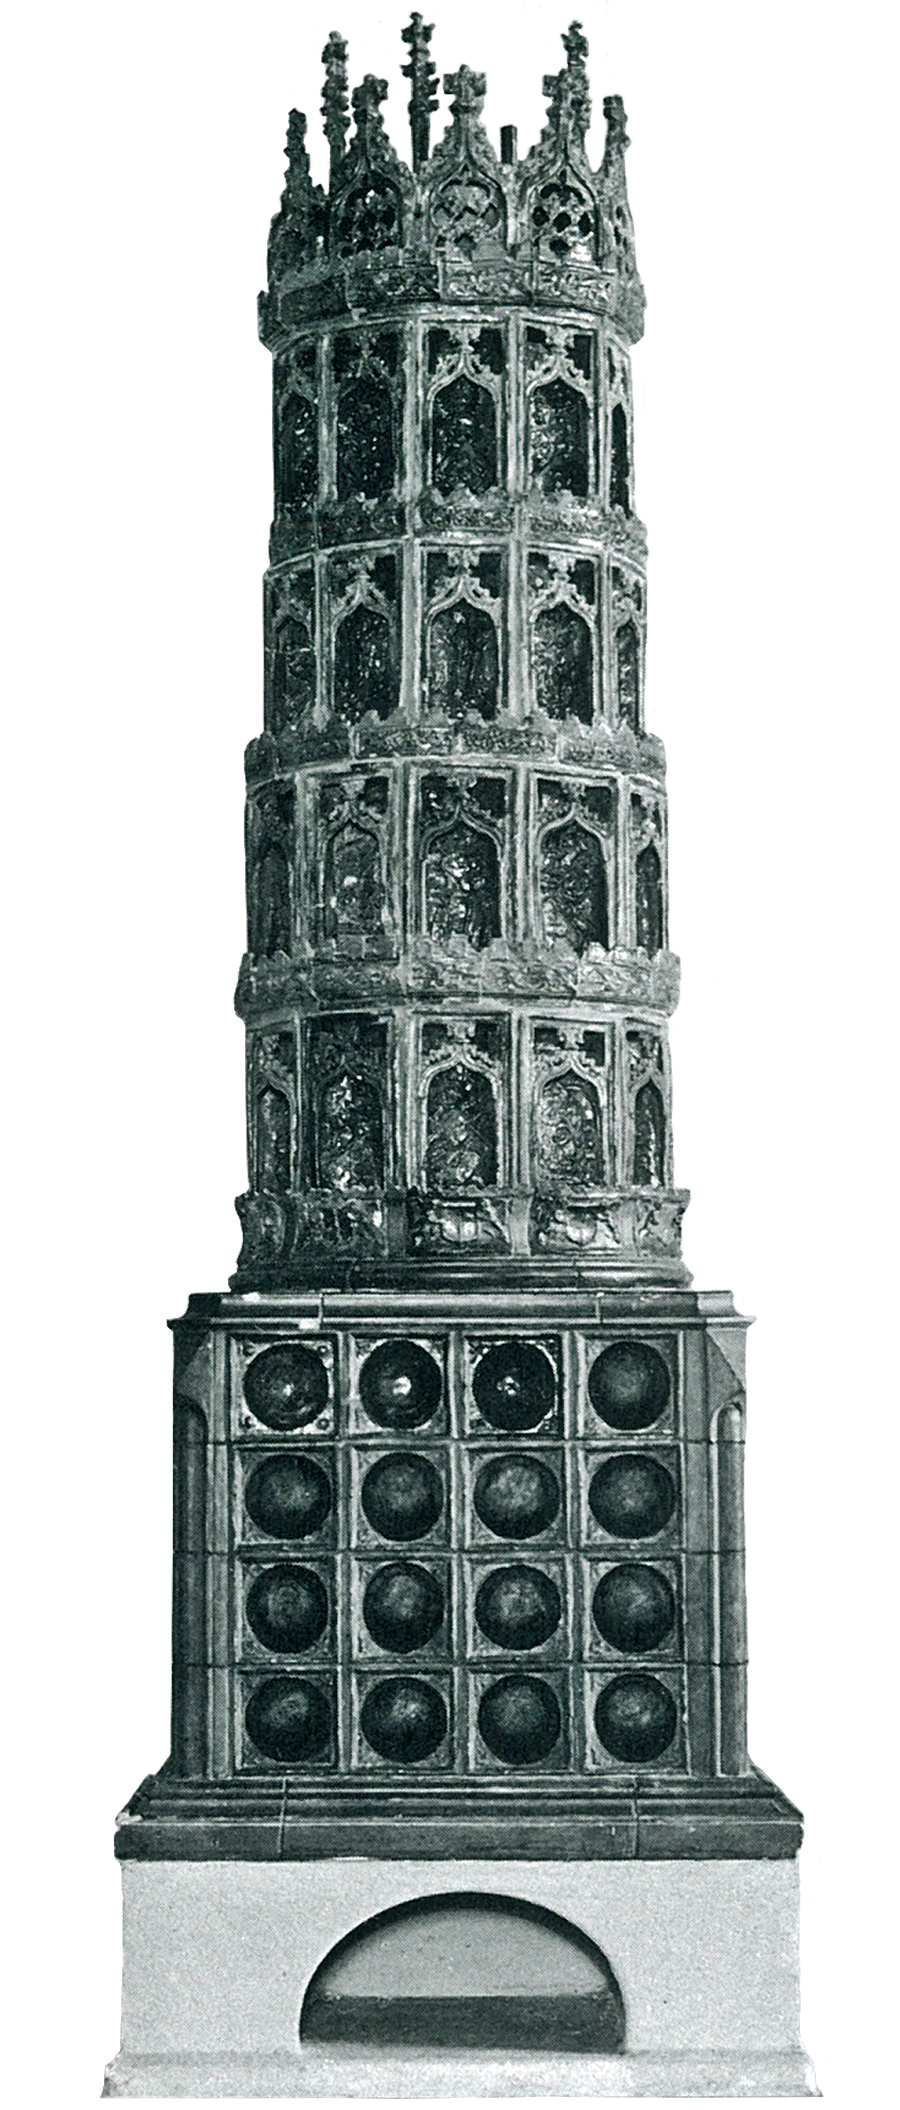 Rekonstruction of a stove with half cylinder tiles dating 1473 Museum of Applied Arts Dresden from Franz 1981 fig. 102. 72dpi 900